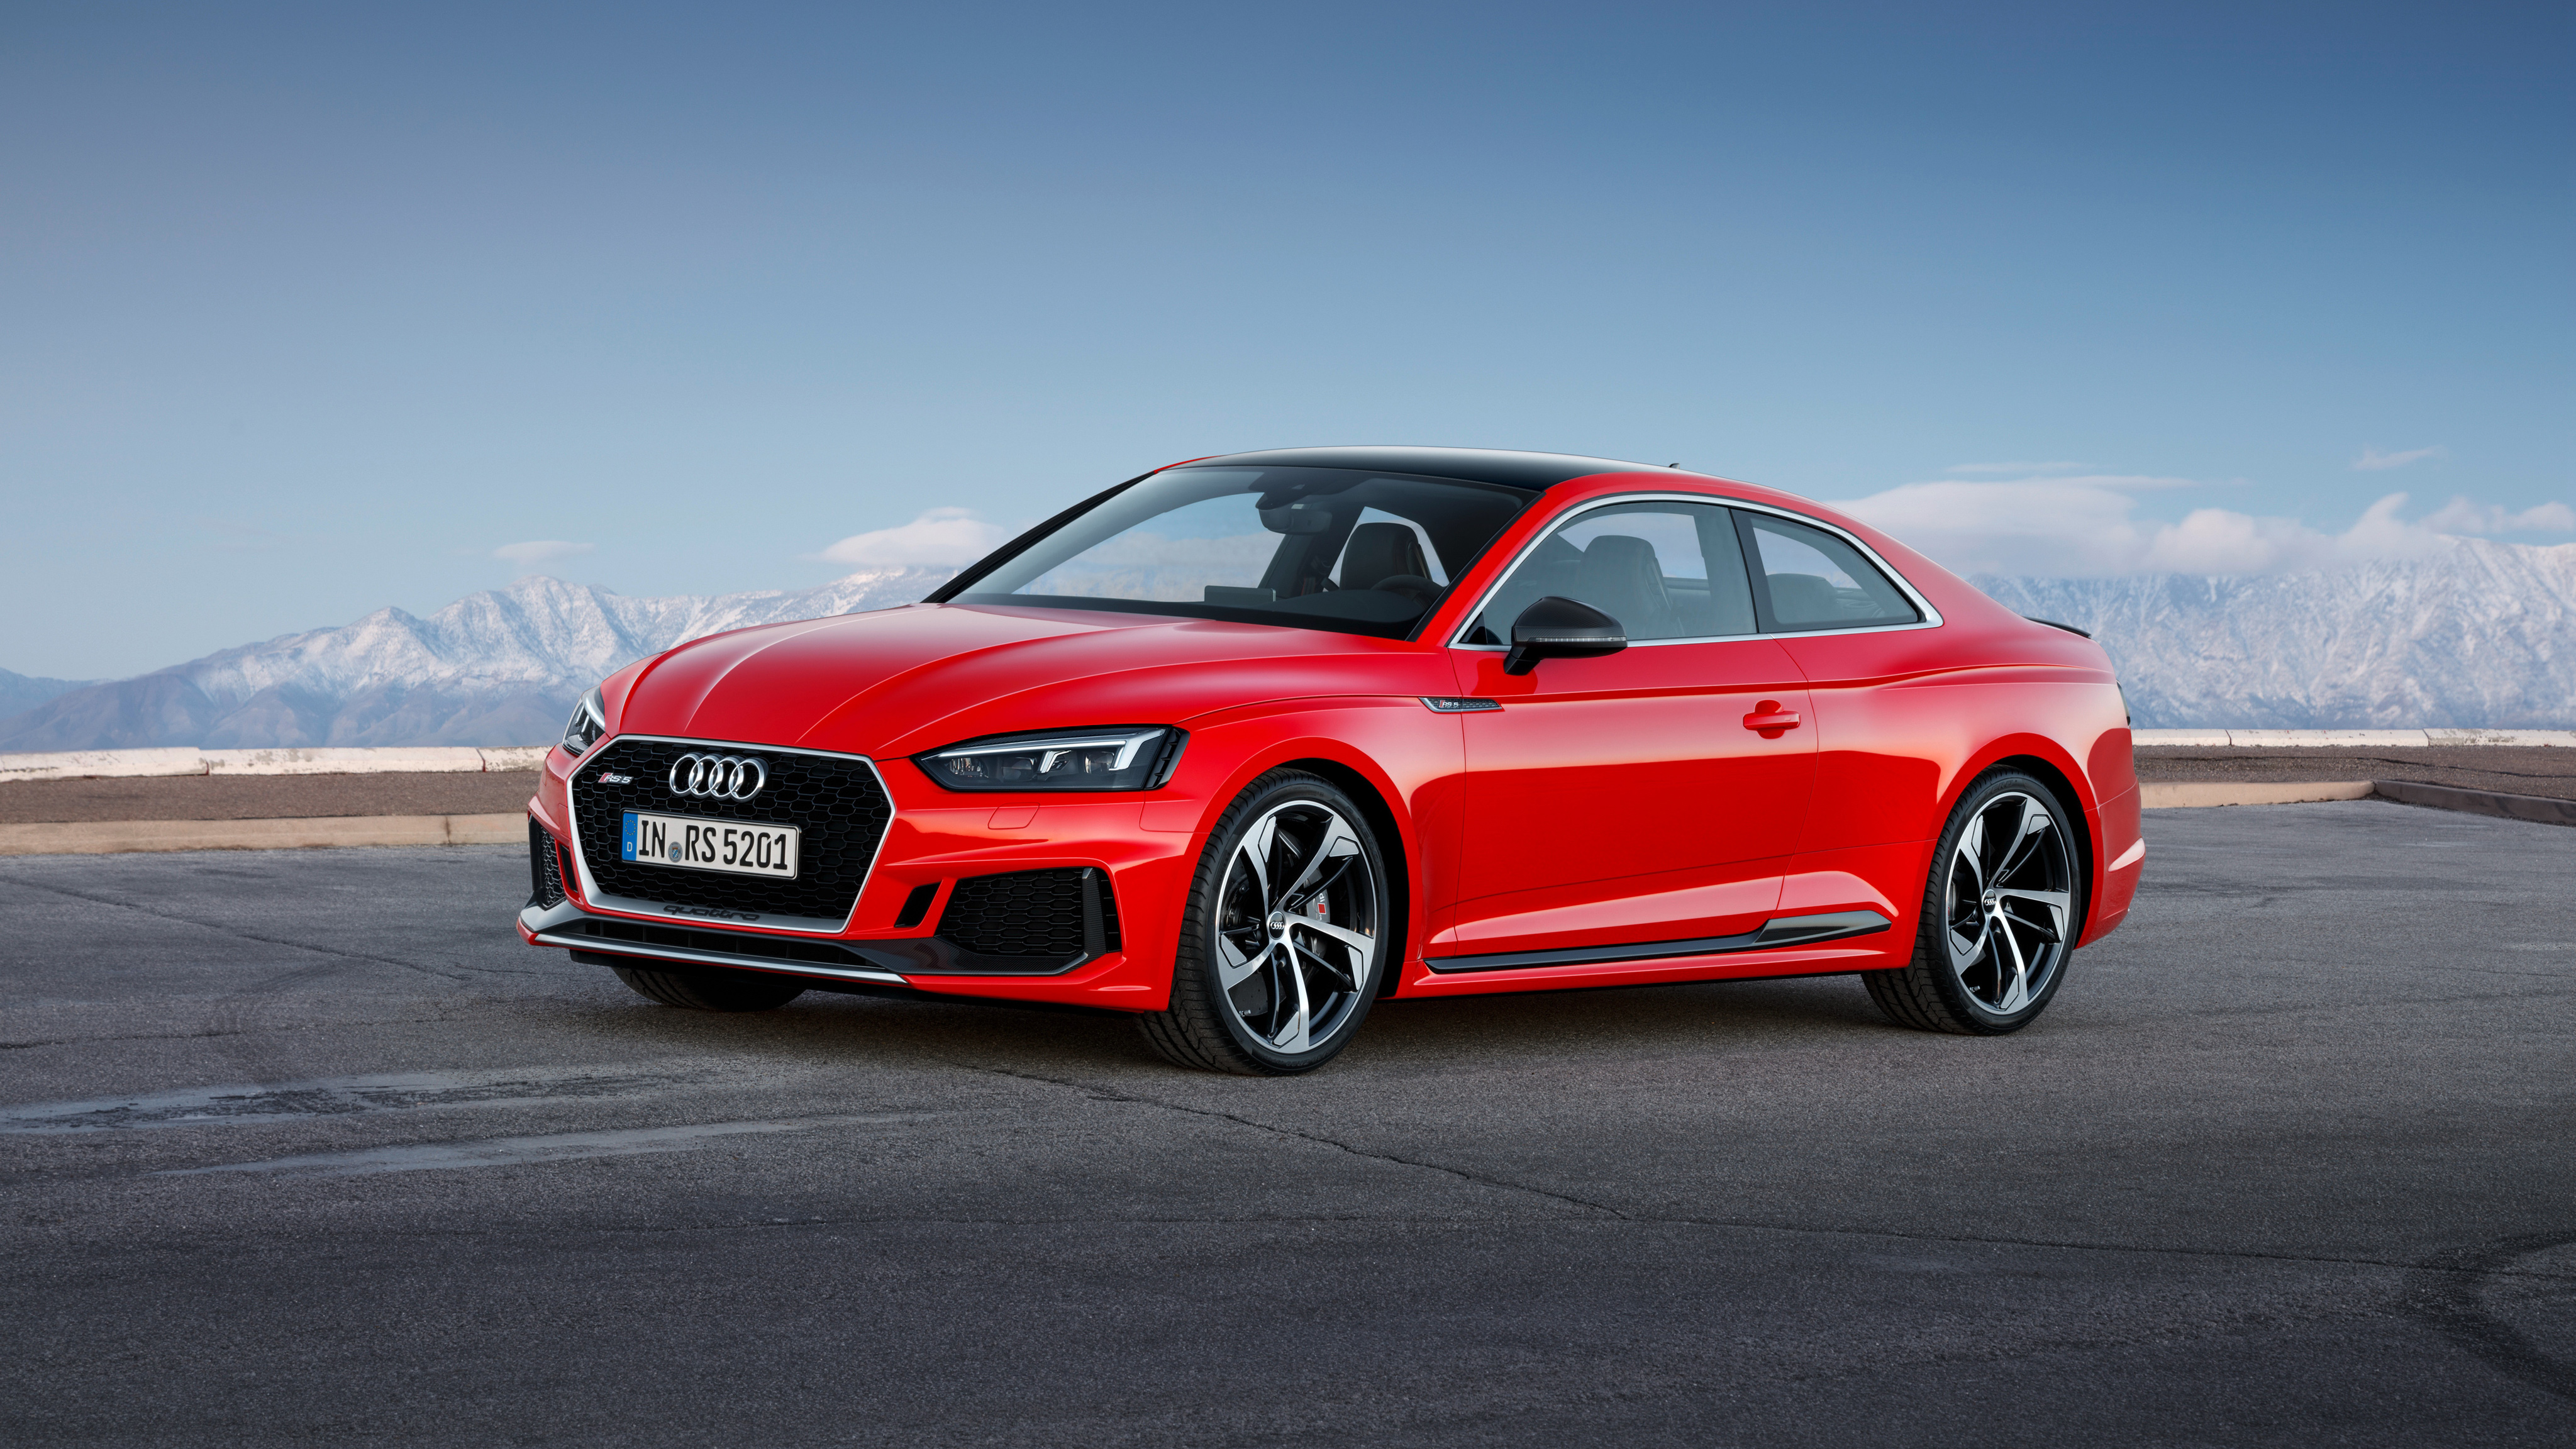 2017 audi rs 5 coupe 2 wallpaper hd car wallpapers id 7477. Black Bedroom Furniture Sets. Home Design Ideas